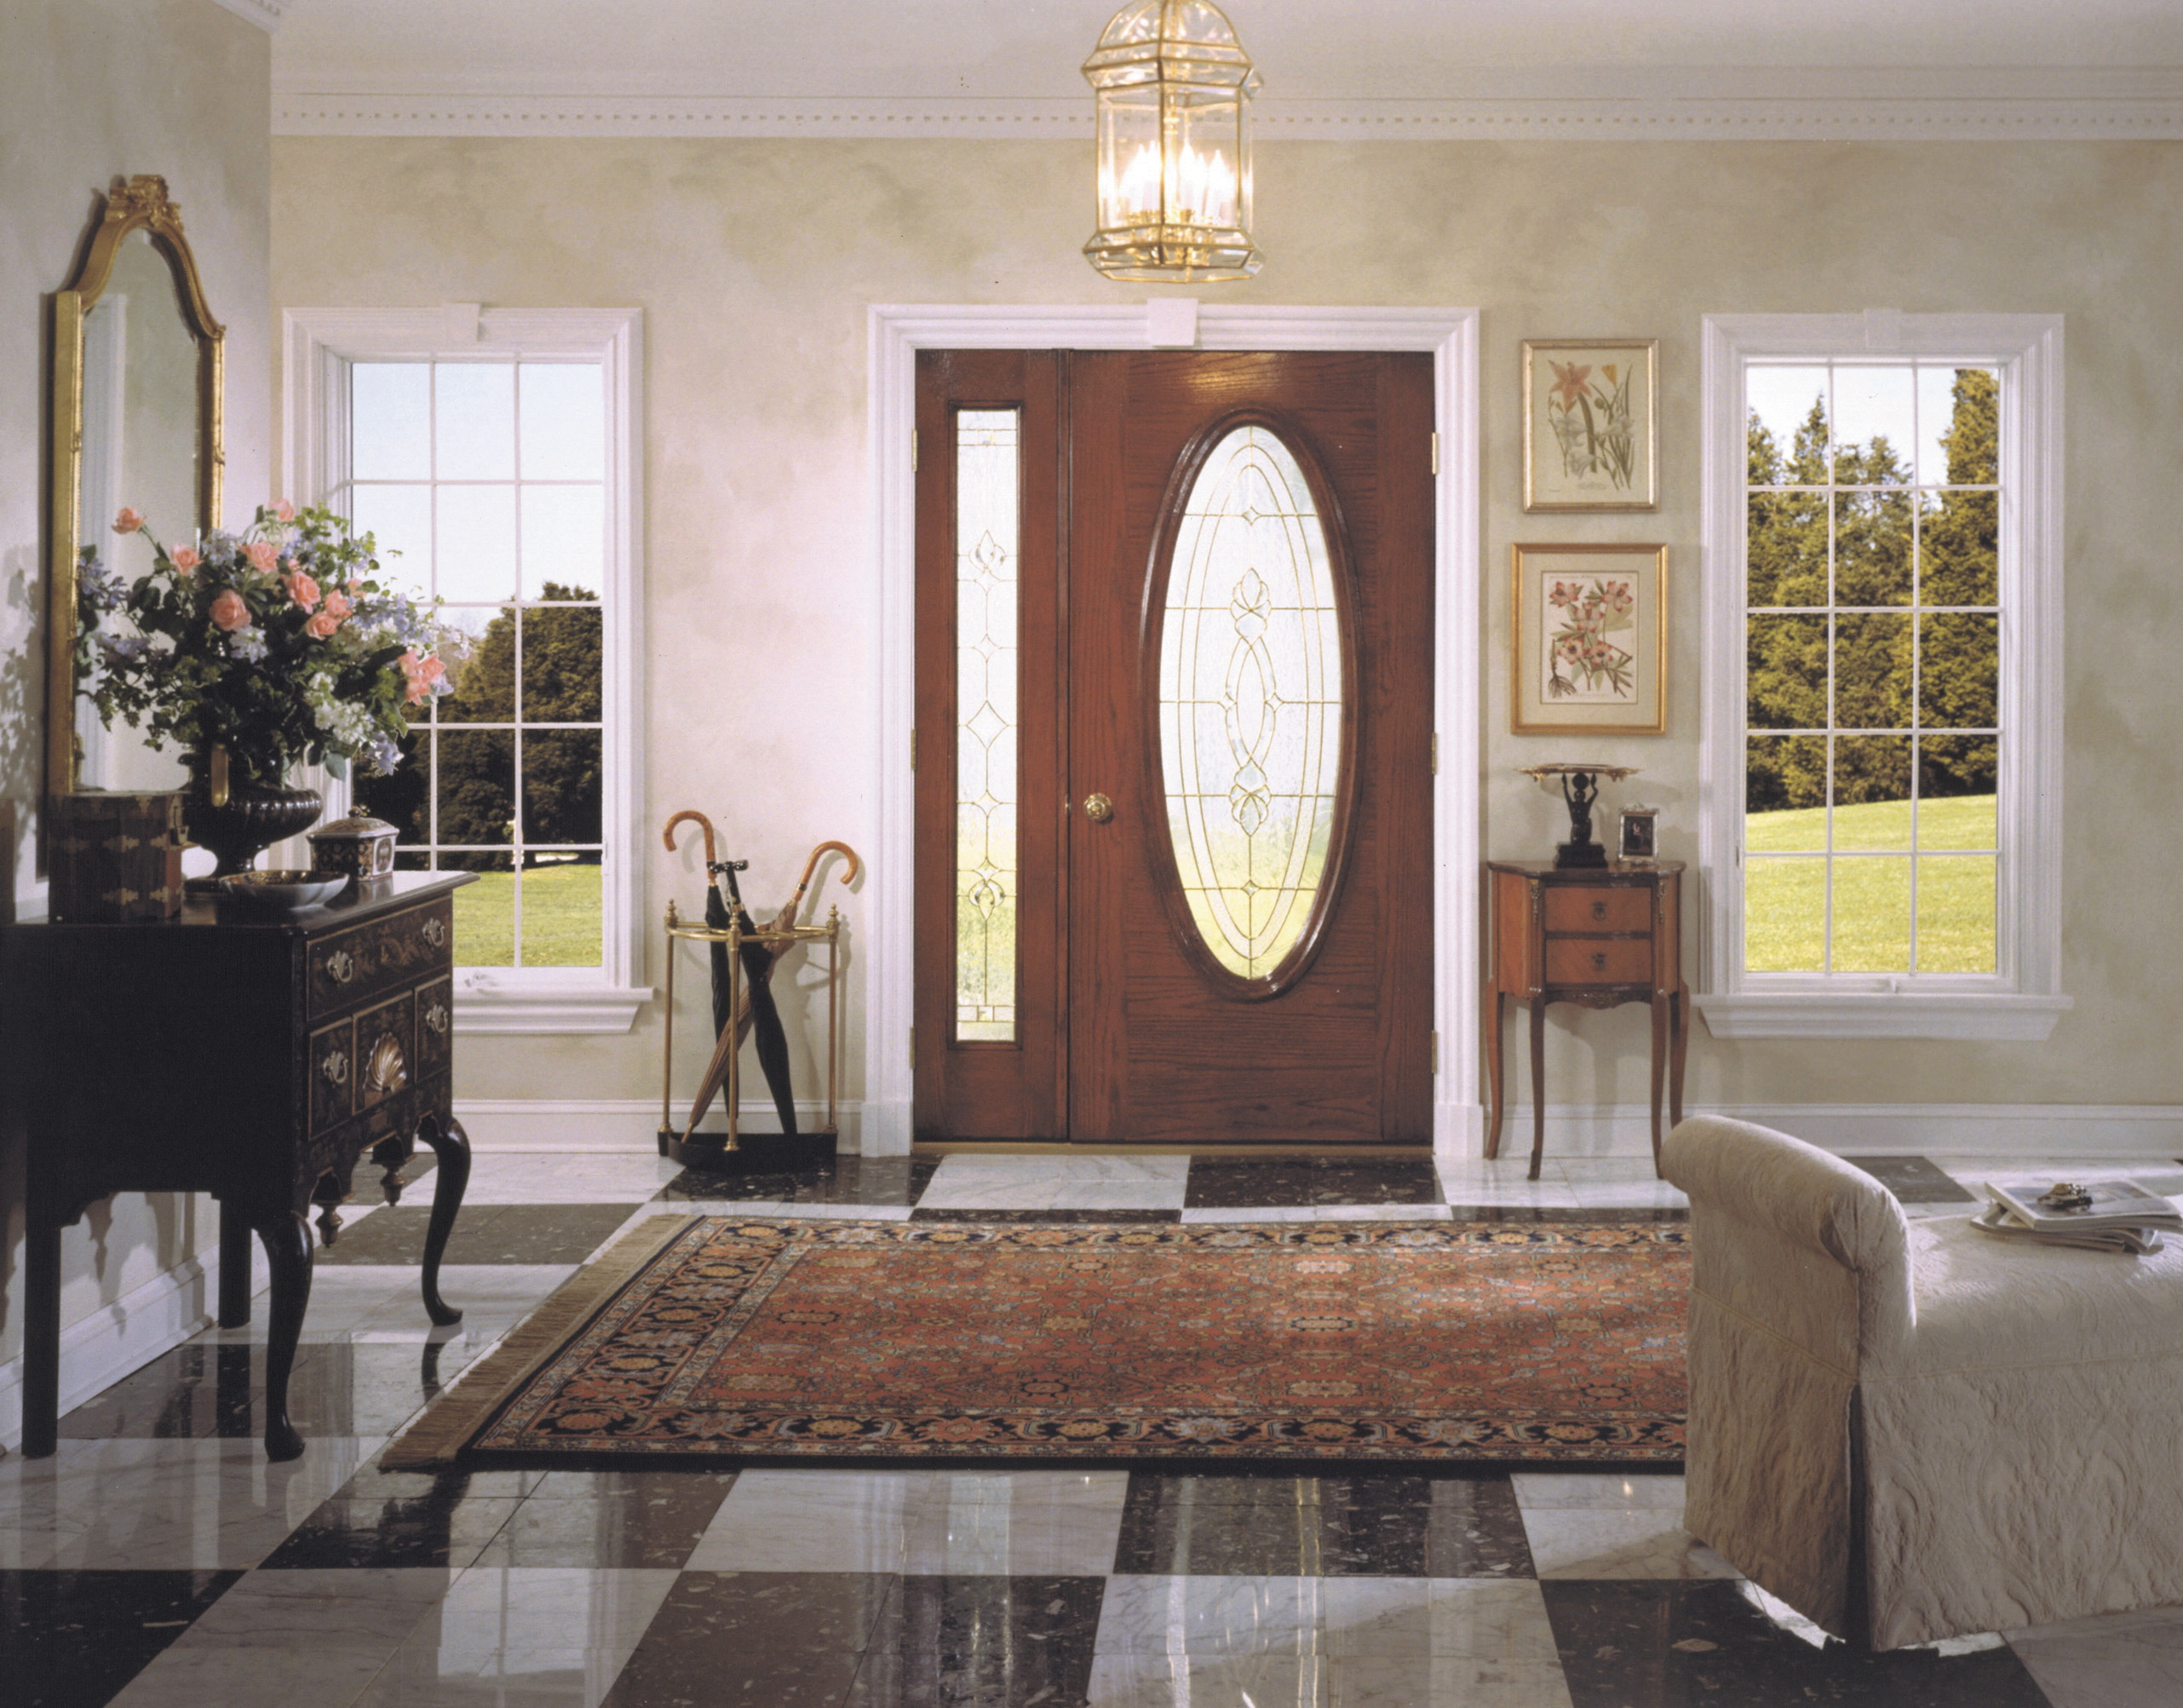 2005 #8D703E C314 2.jpg Color Photo Installing A Fiberglass Door Witha Single  image Peachtree Entry Doors 46832563